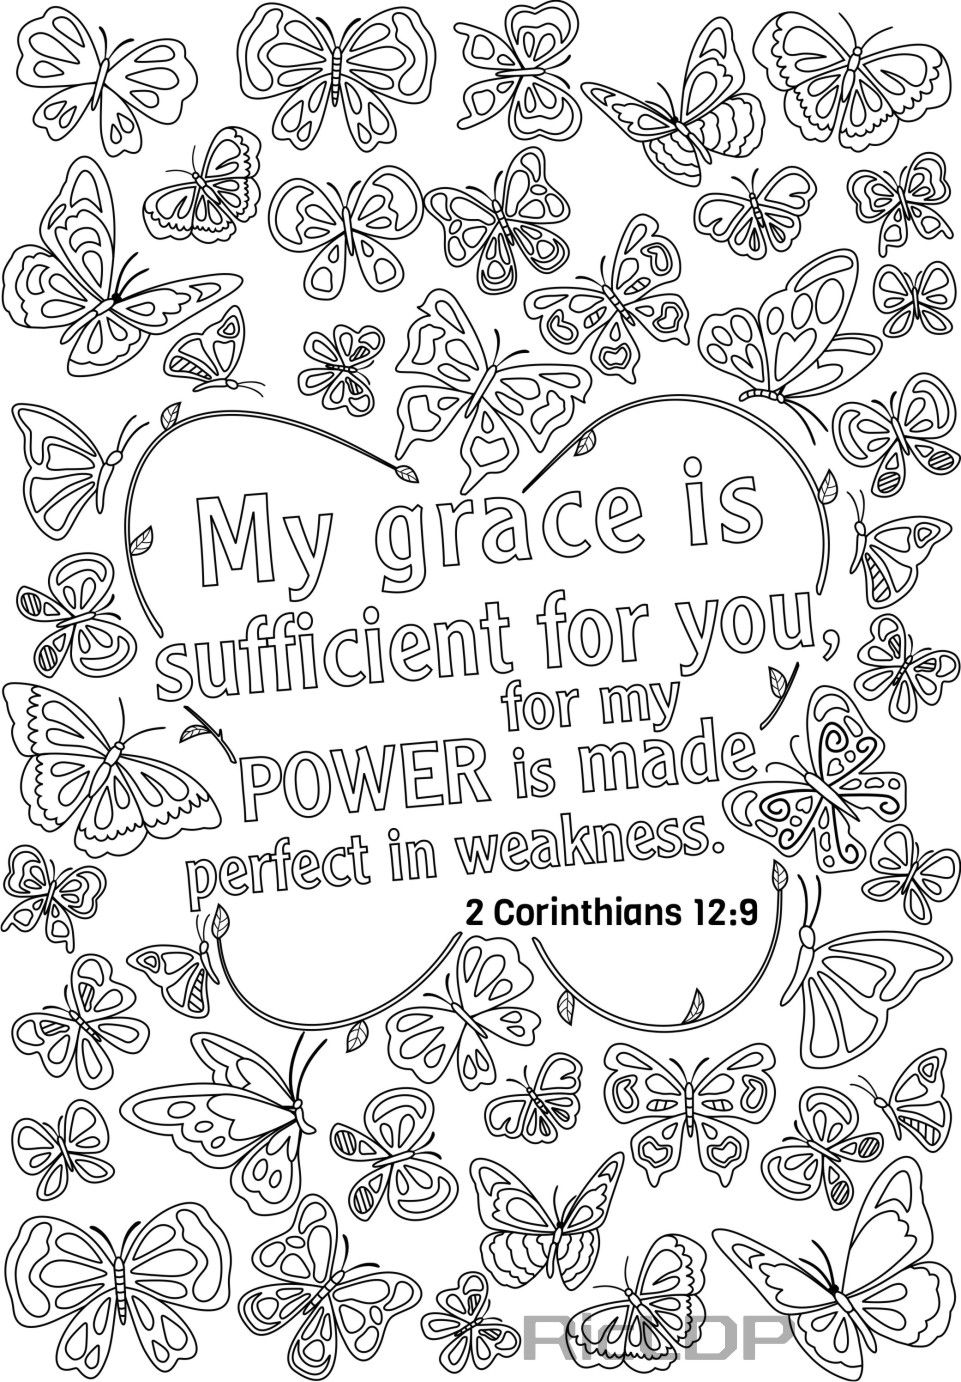 14 bible verse coloring pages for grown ups see the link